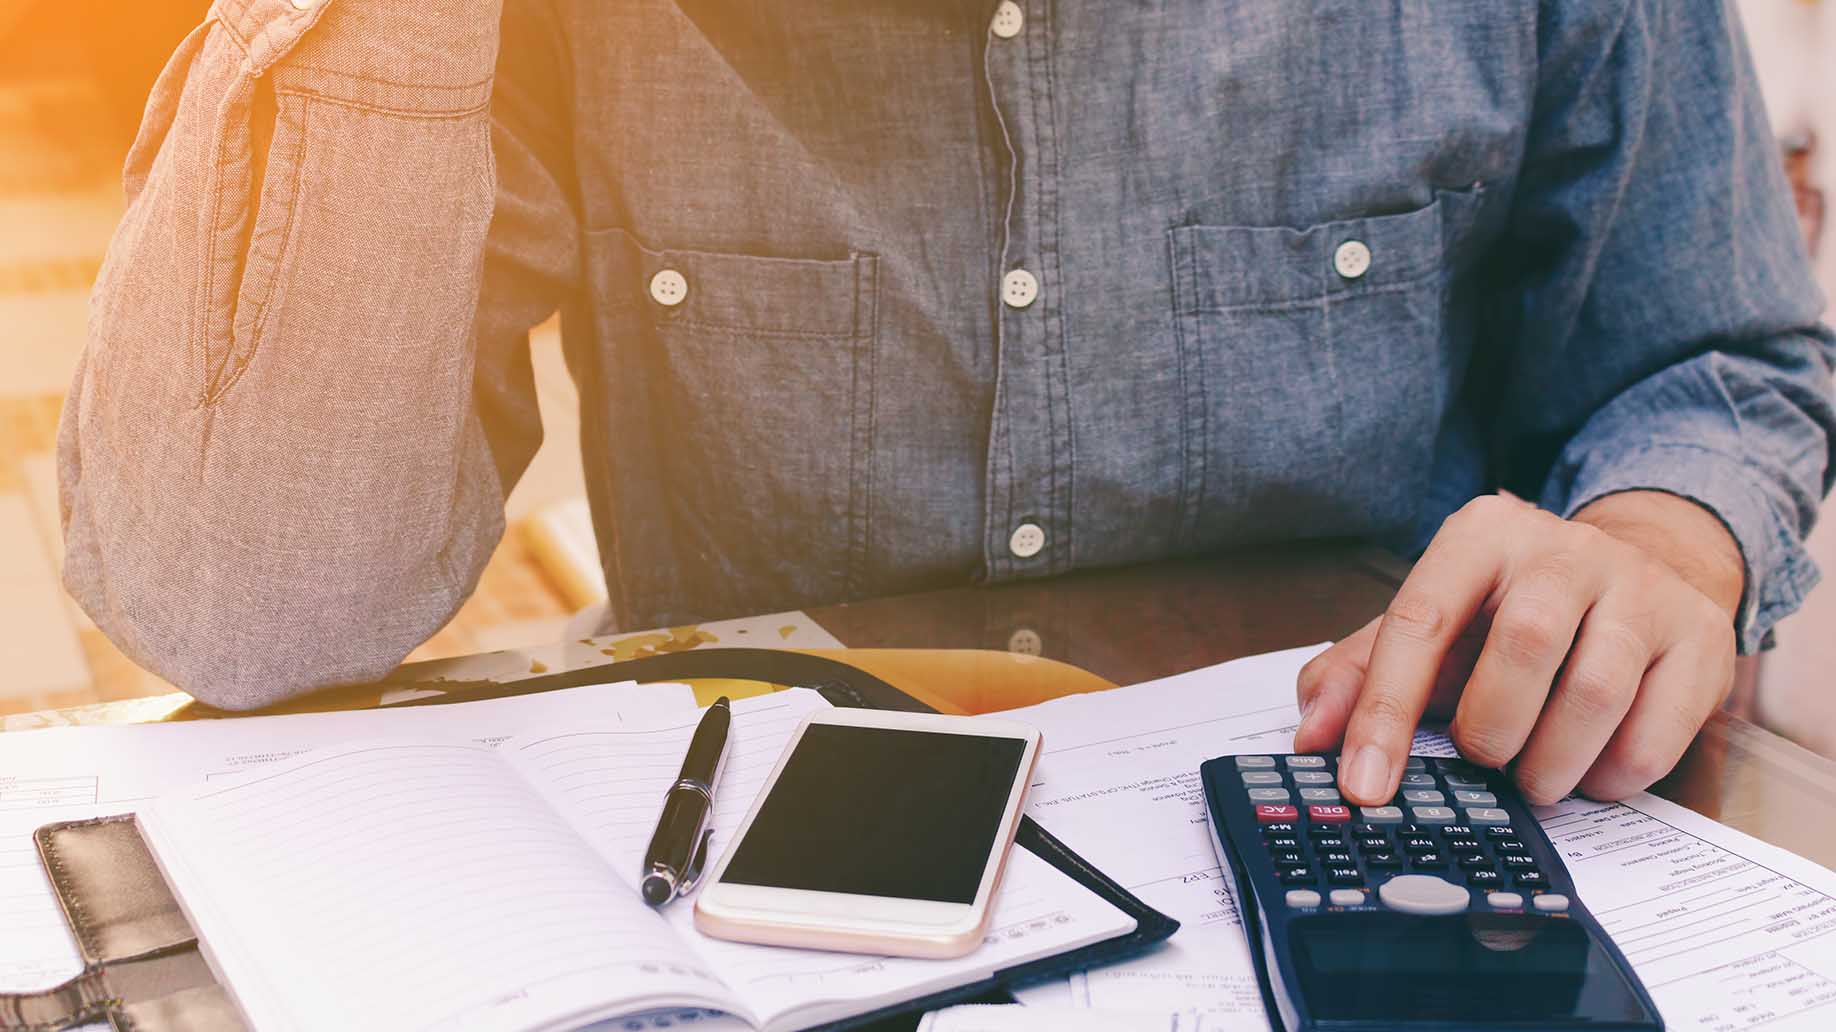 man counting using calculator stress problem